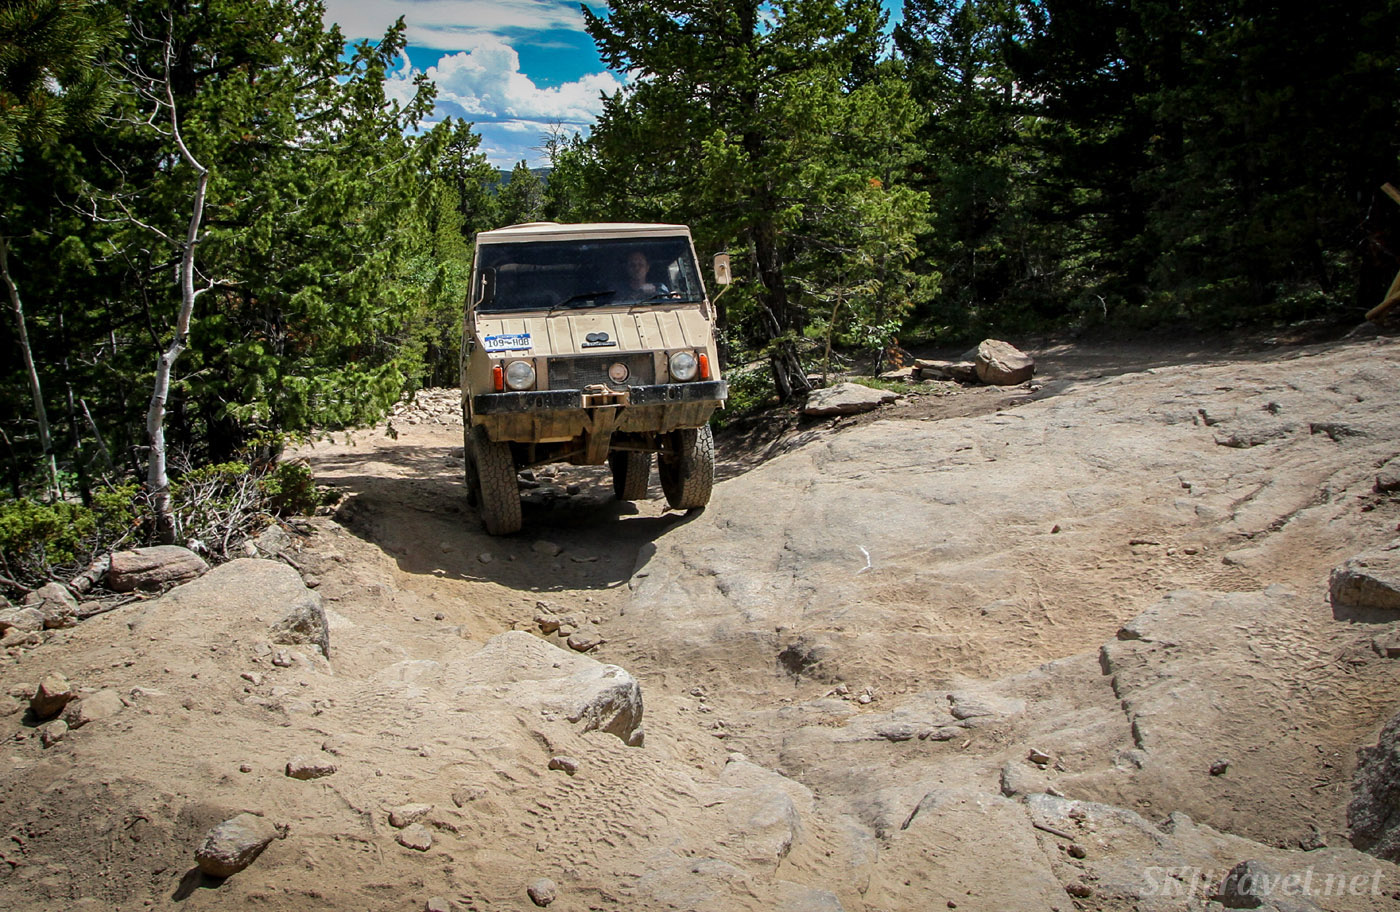 Steyr Puch 1973 Pinzgauer on the T-33 plane crash site 4x4 trail. Colorado.